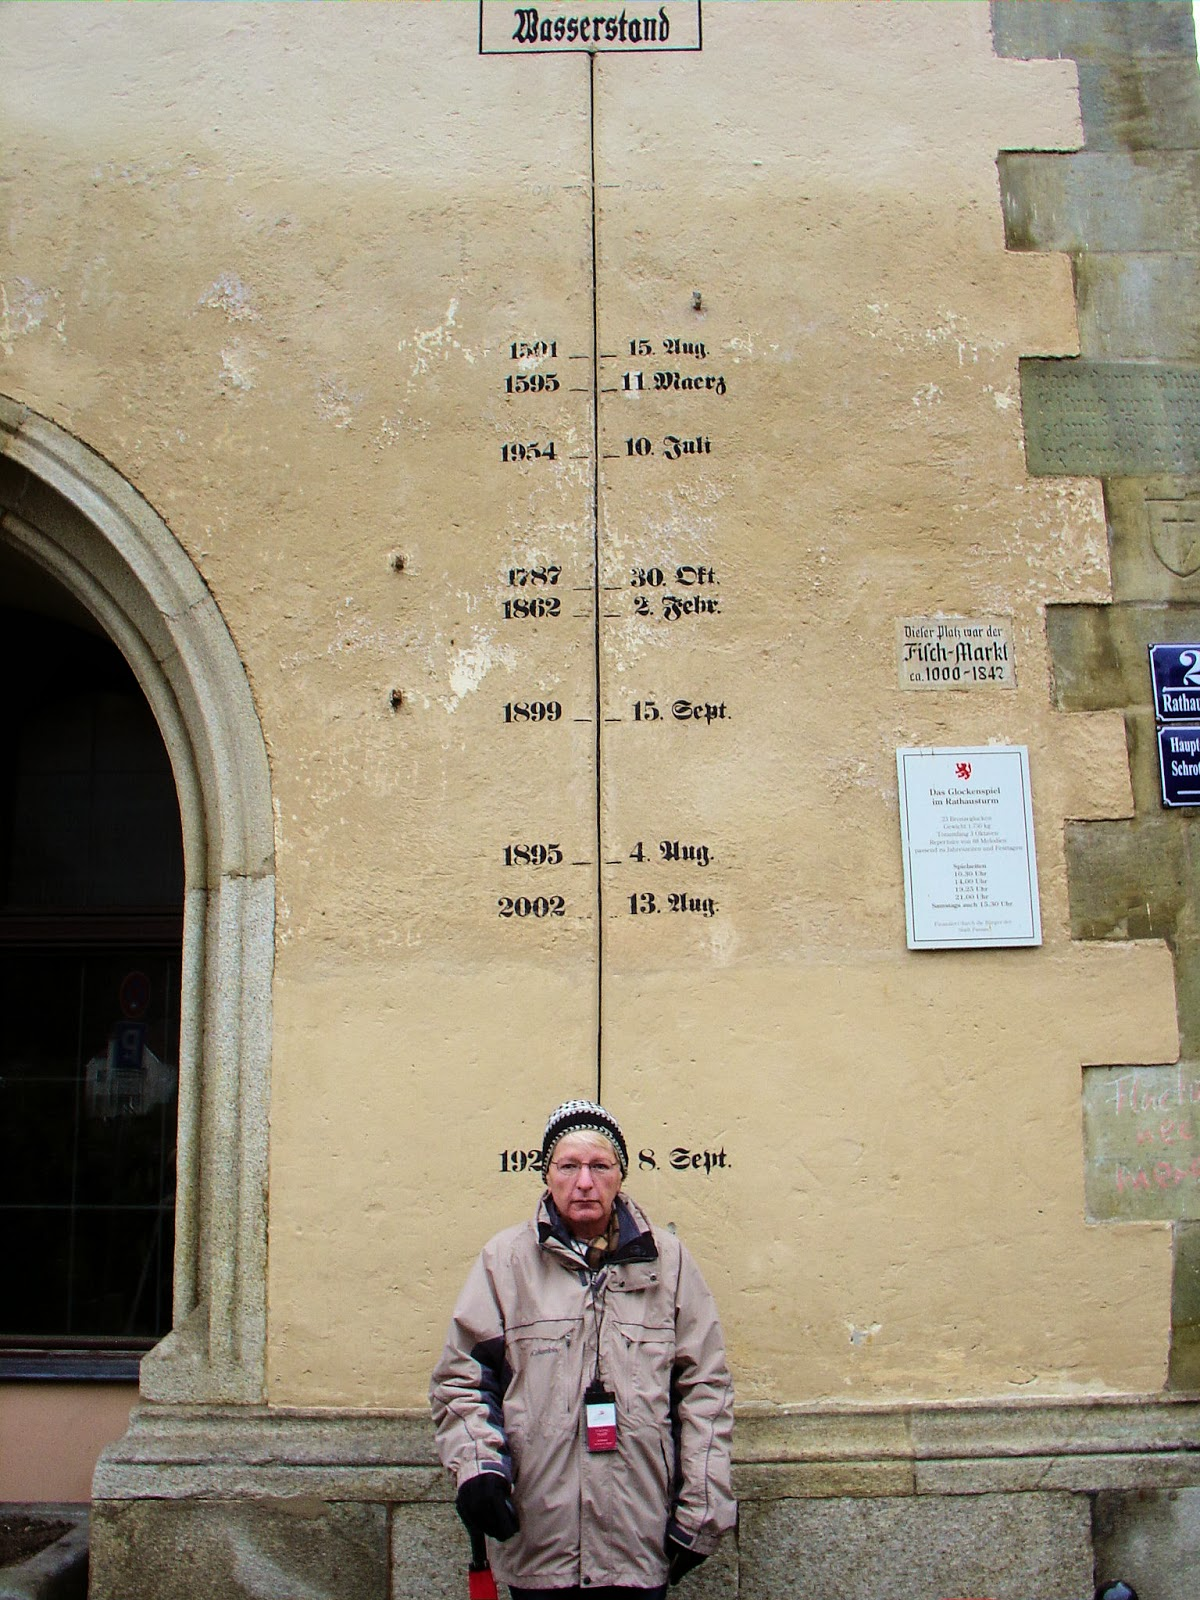 To provide scale, look where the 2013 marker is at very top of this image.